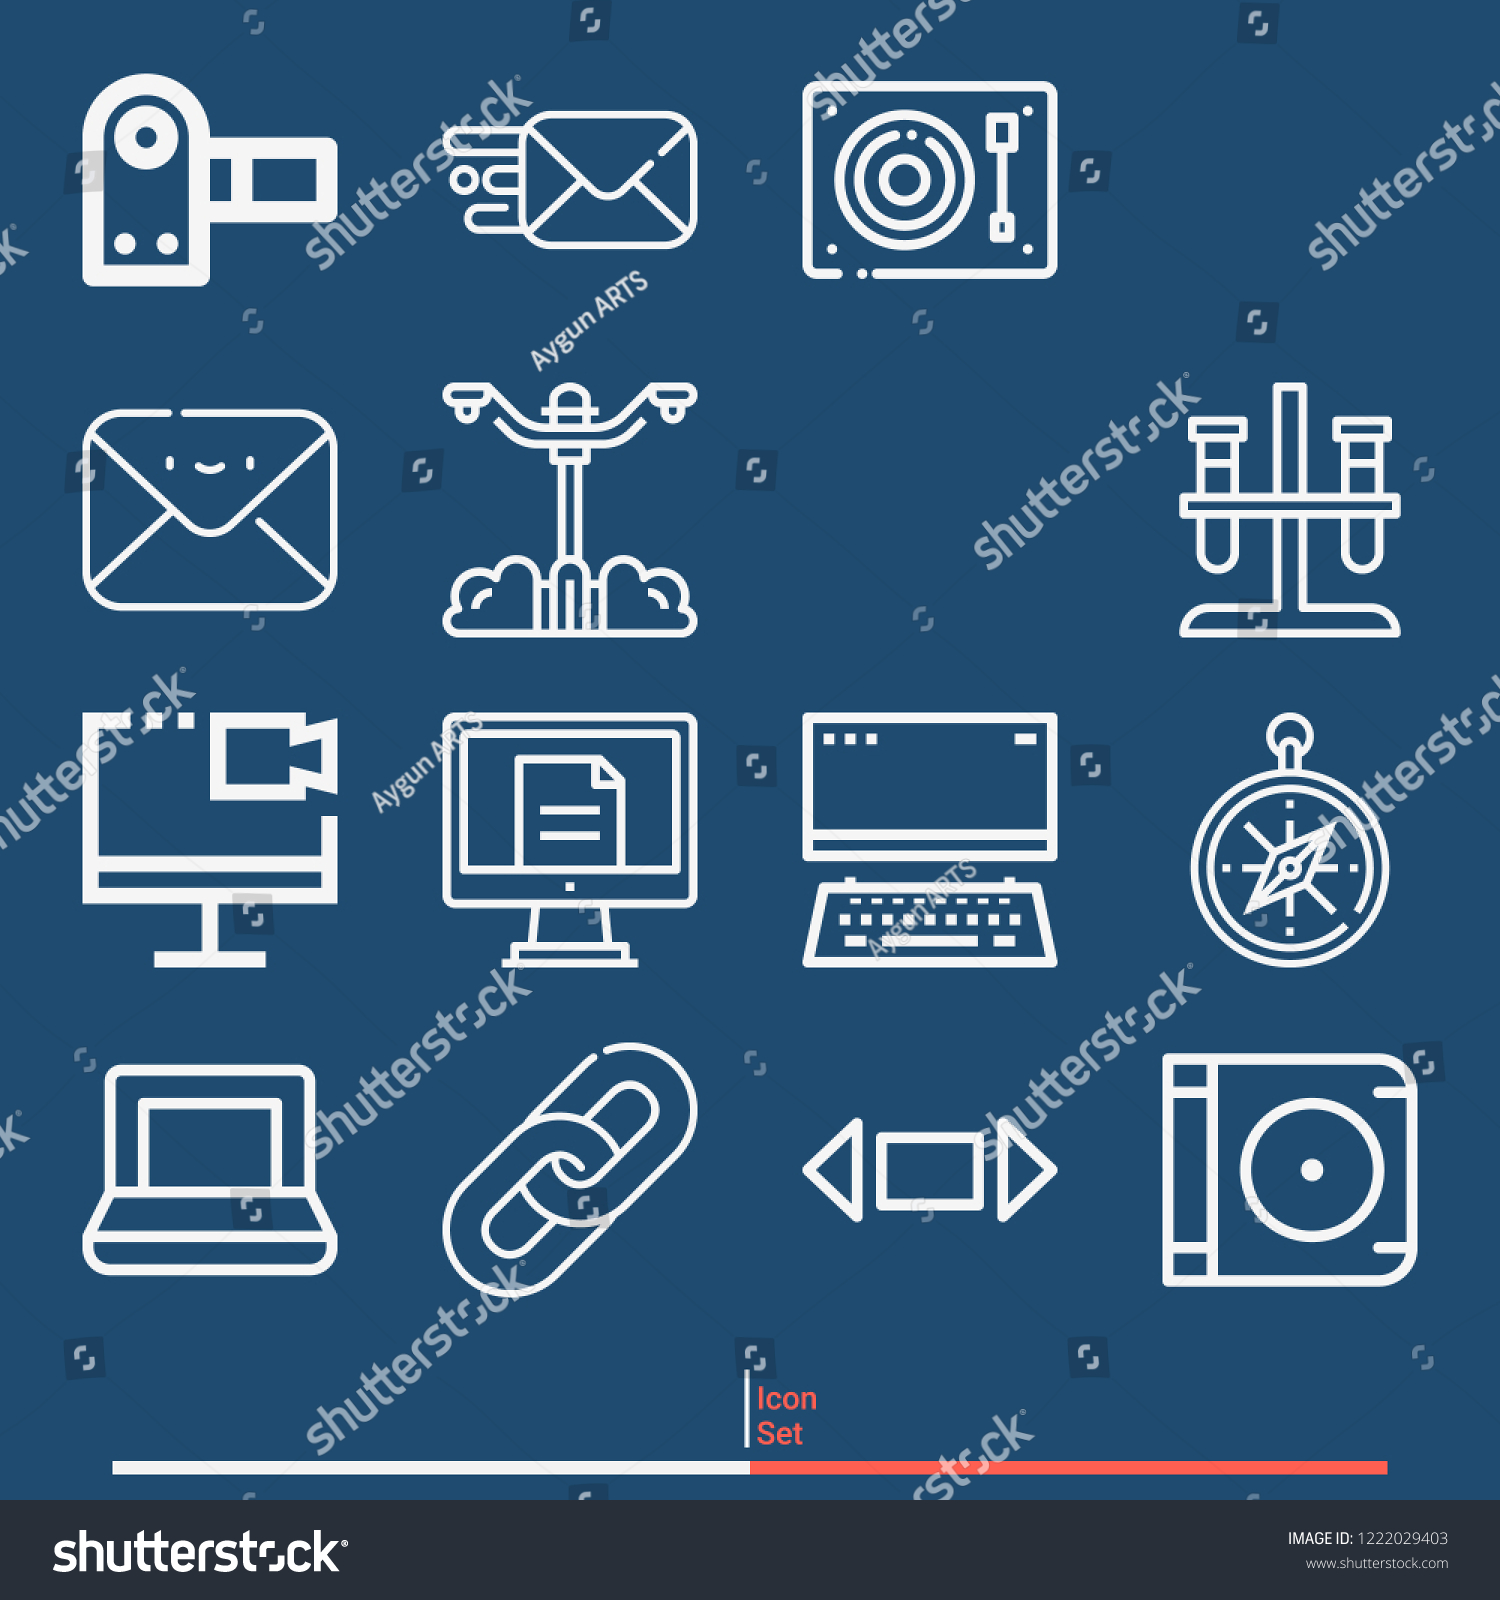 hight resolution of camcorder laptop diagram wiring diagram library camcorder laptop diagram